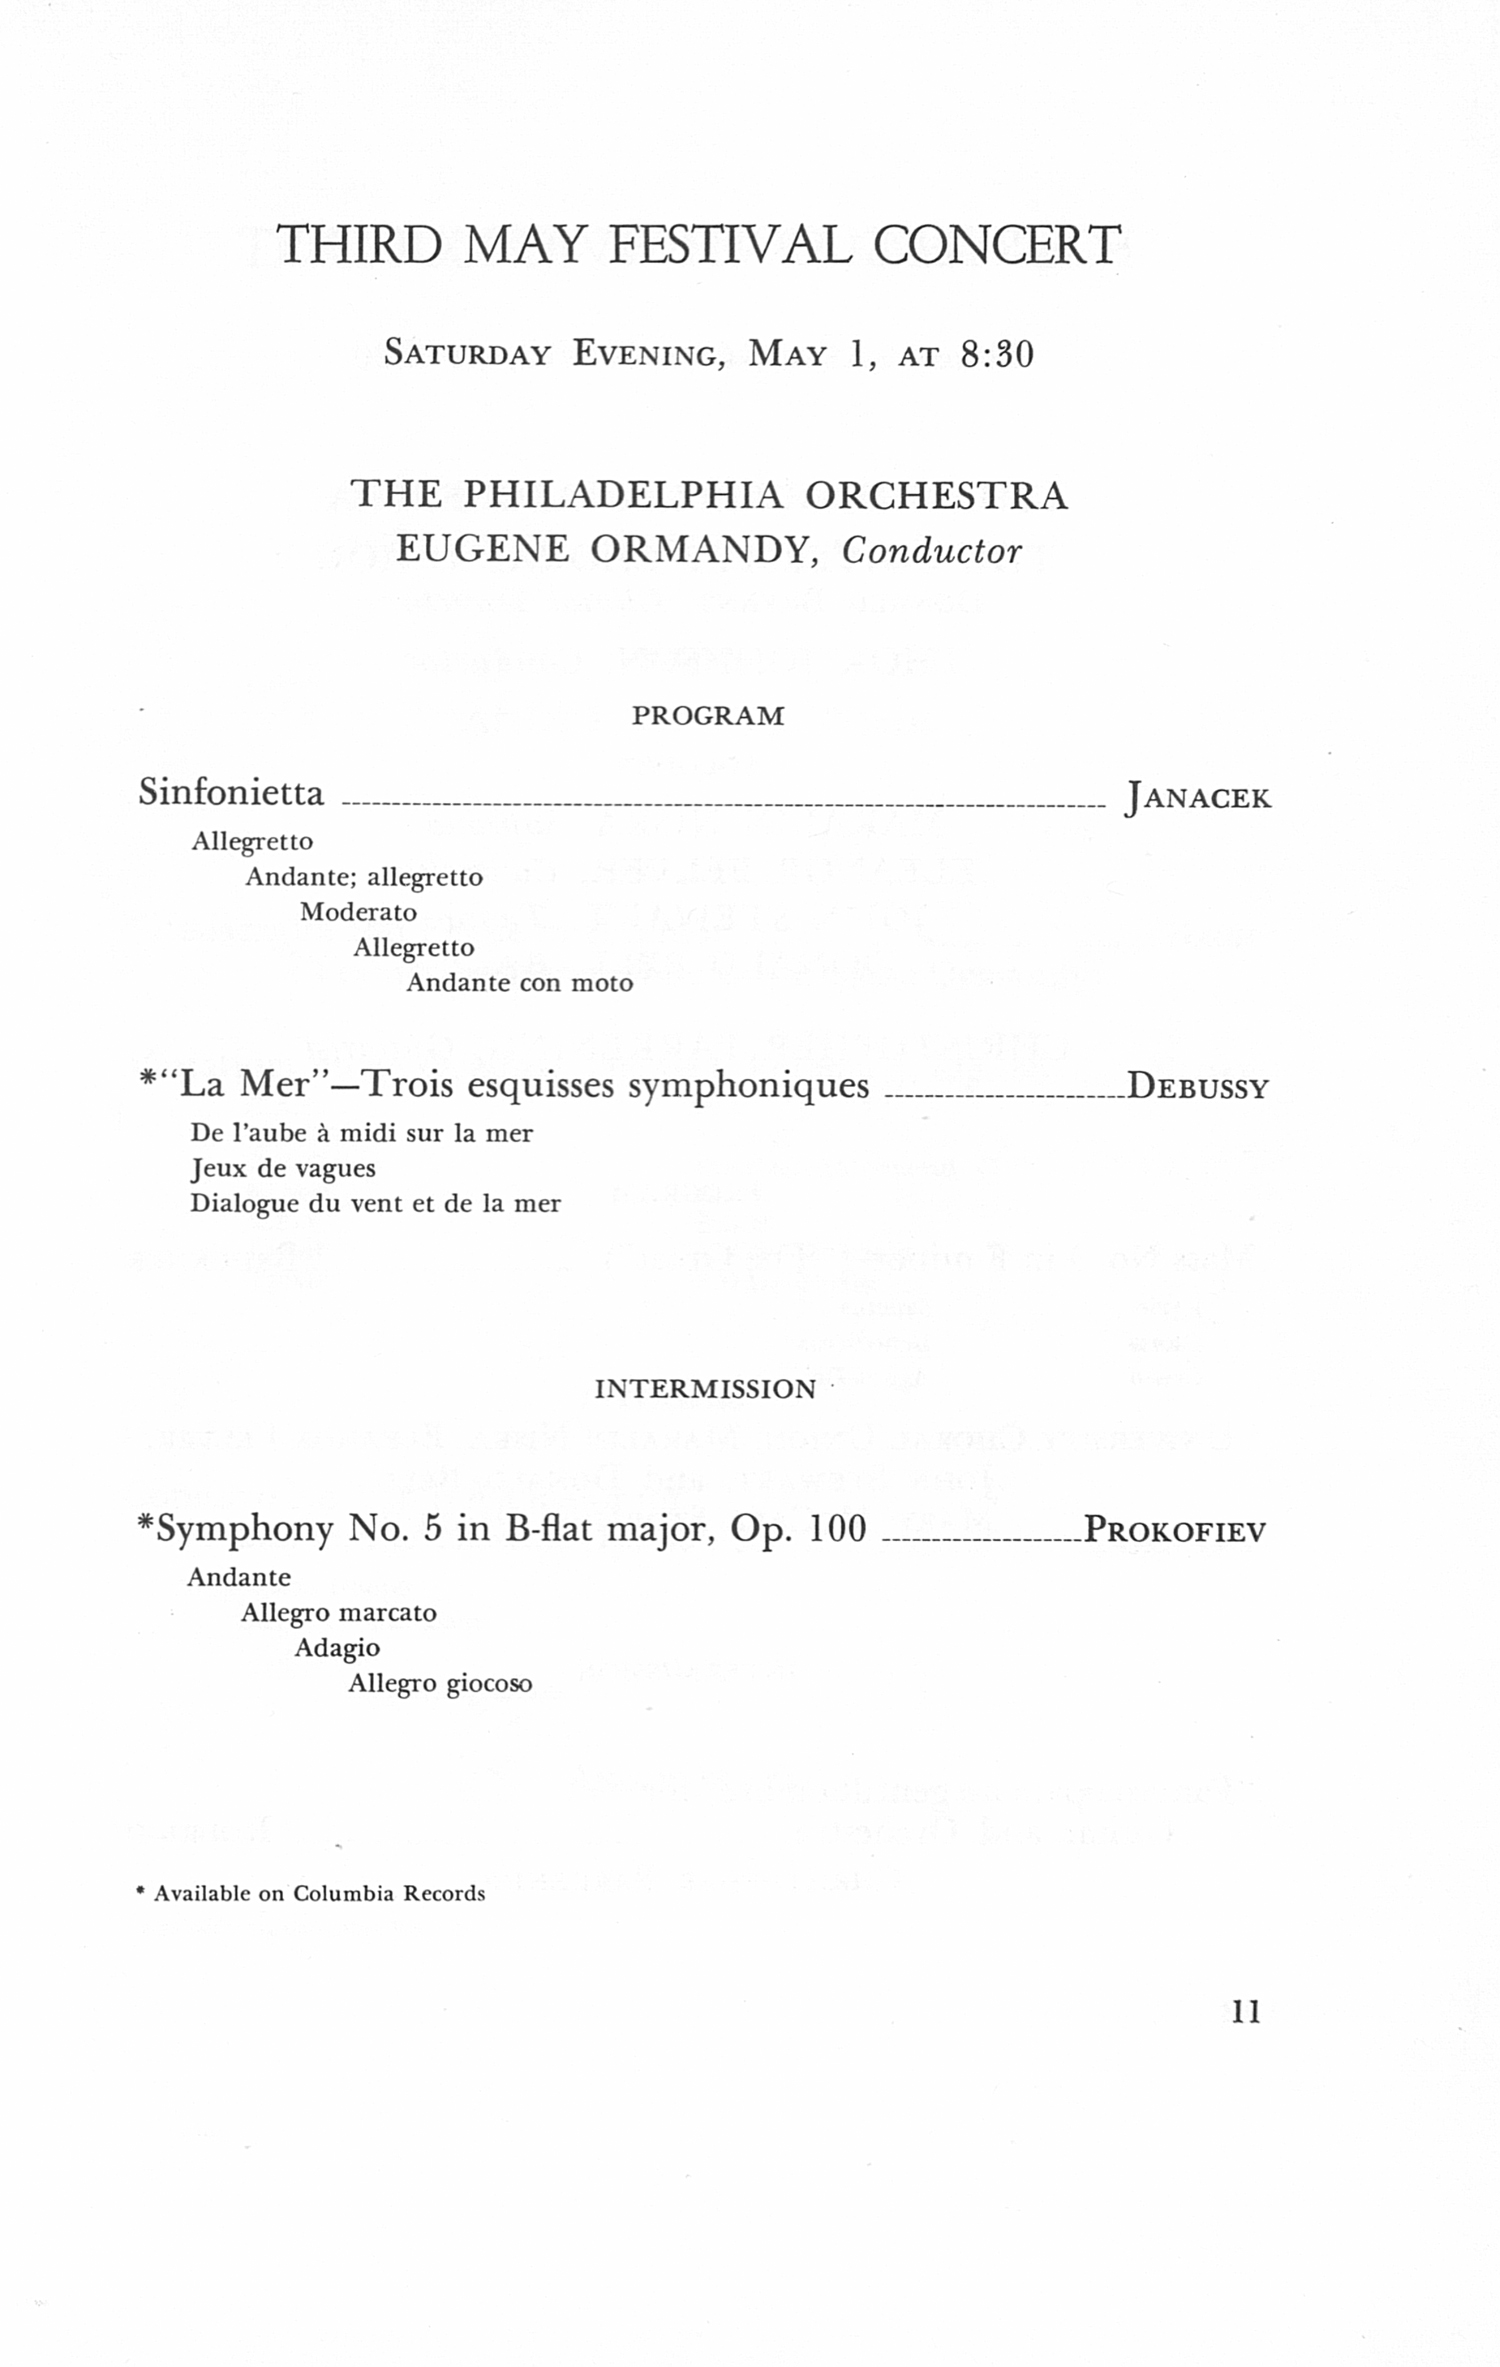 UMS Concert Program, April 29, 30; May 1, 2, 1971: The Seventy-eighth Ann Arbor May Festival -- The Philadelphia Orchestra image